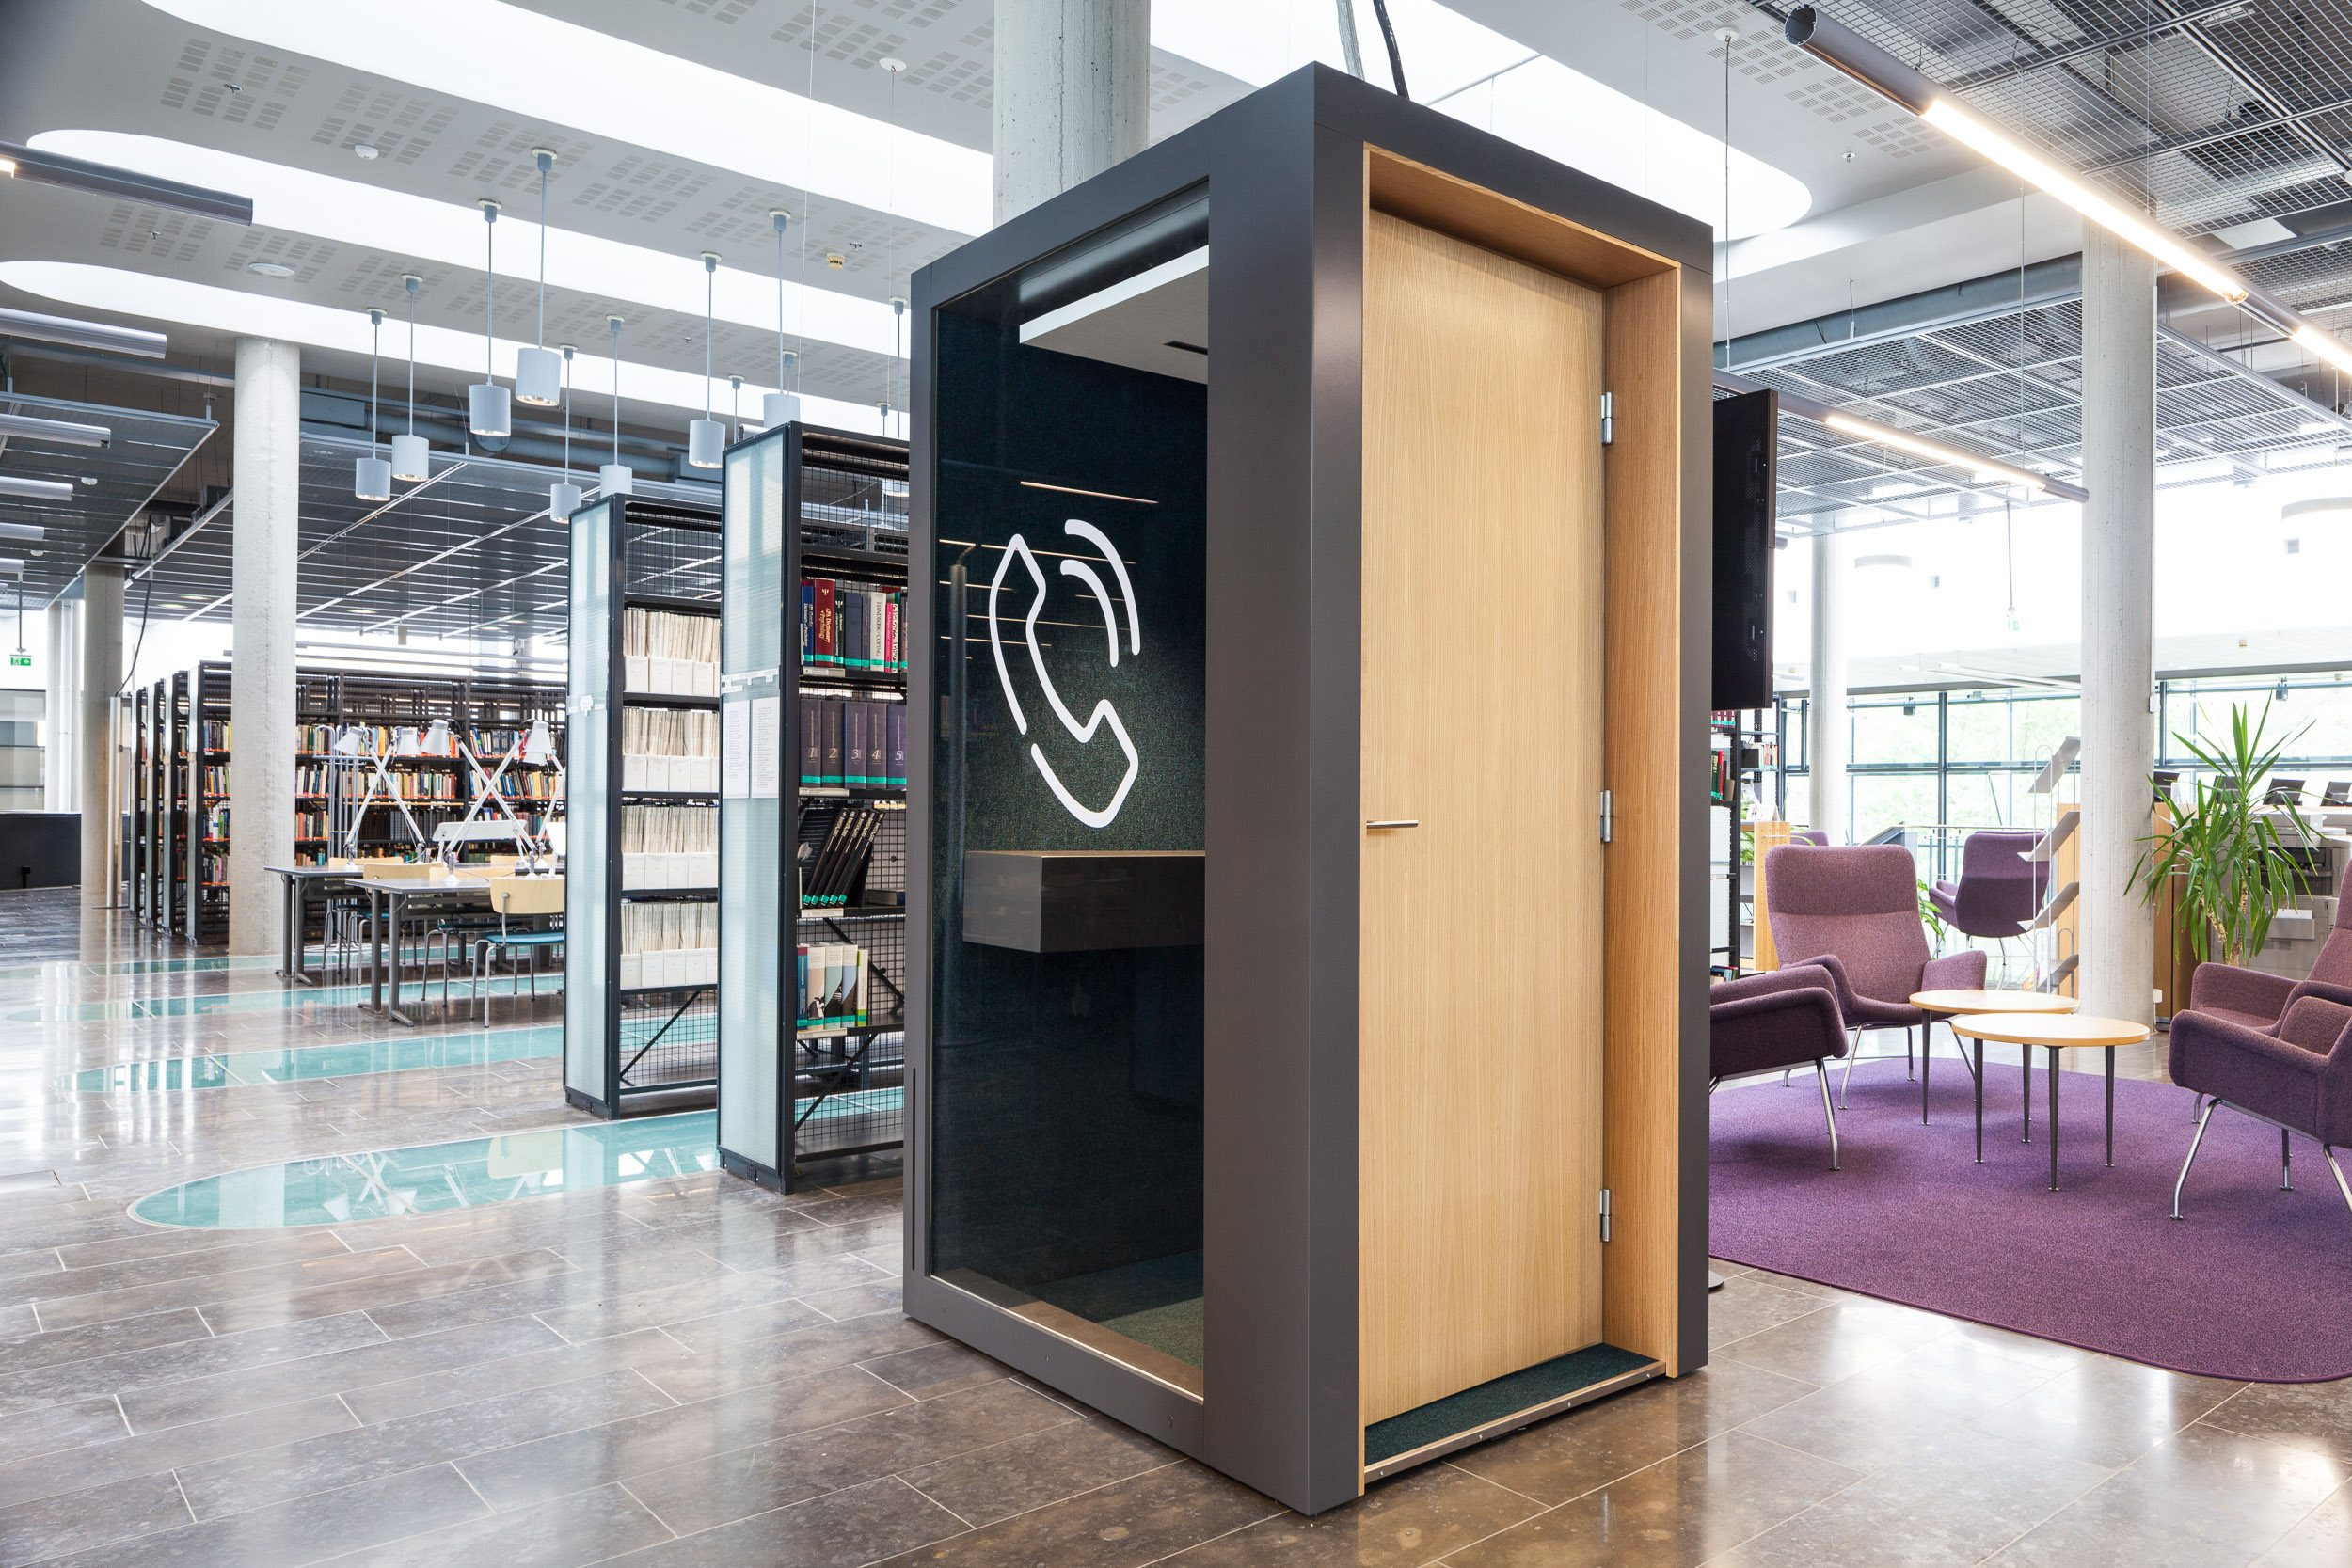 Sound Proof Pod Phone Booth For Offices Into The Nordic